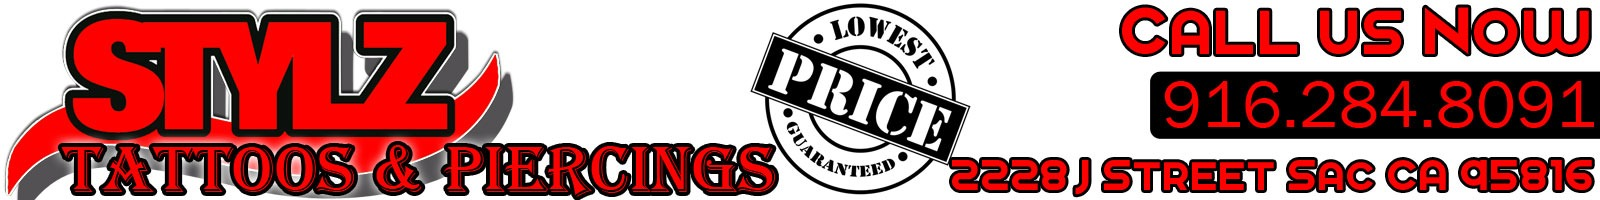 Best Prices for Tattoos Piercings in Sacramento